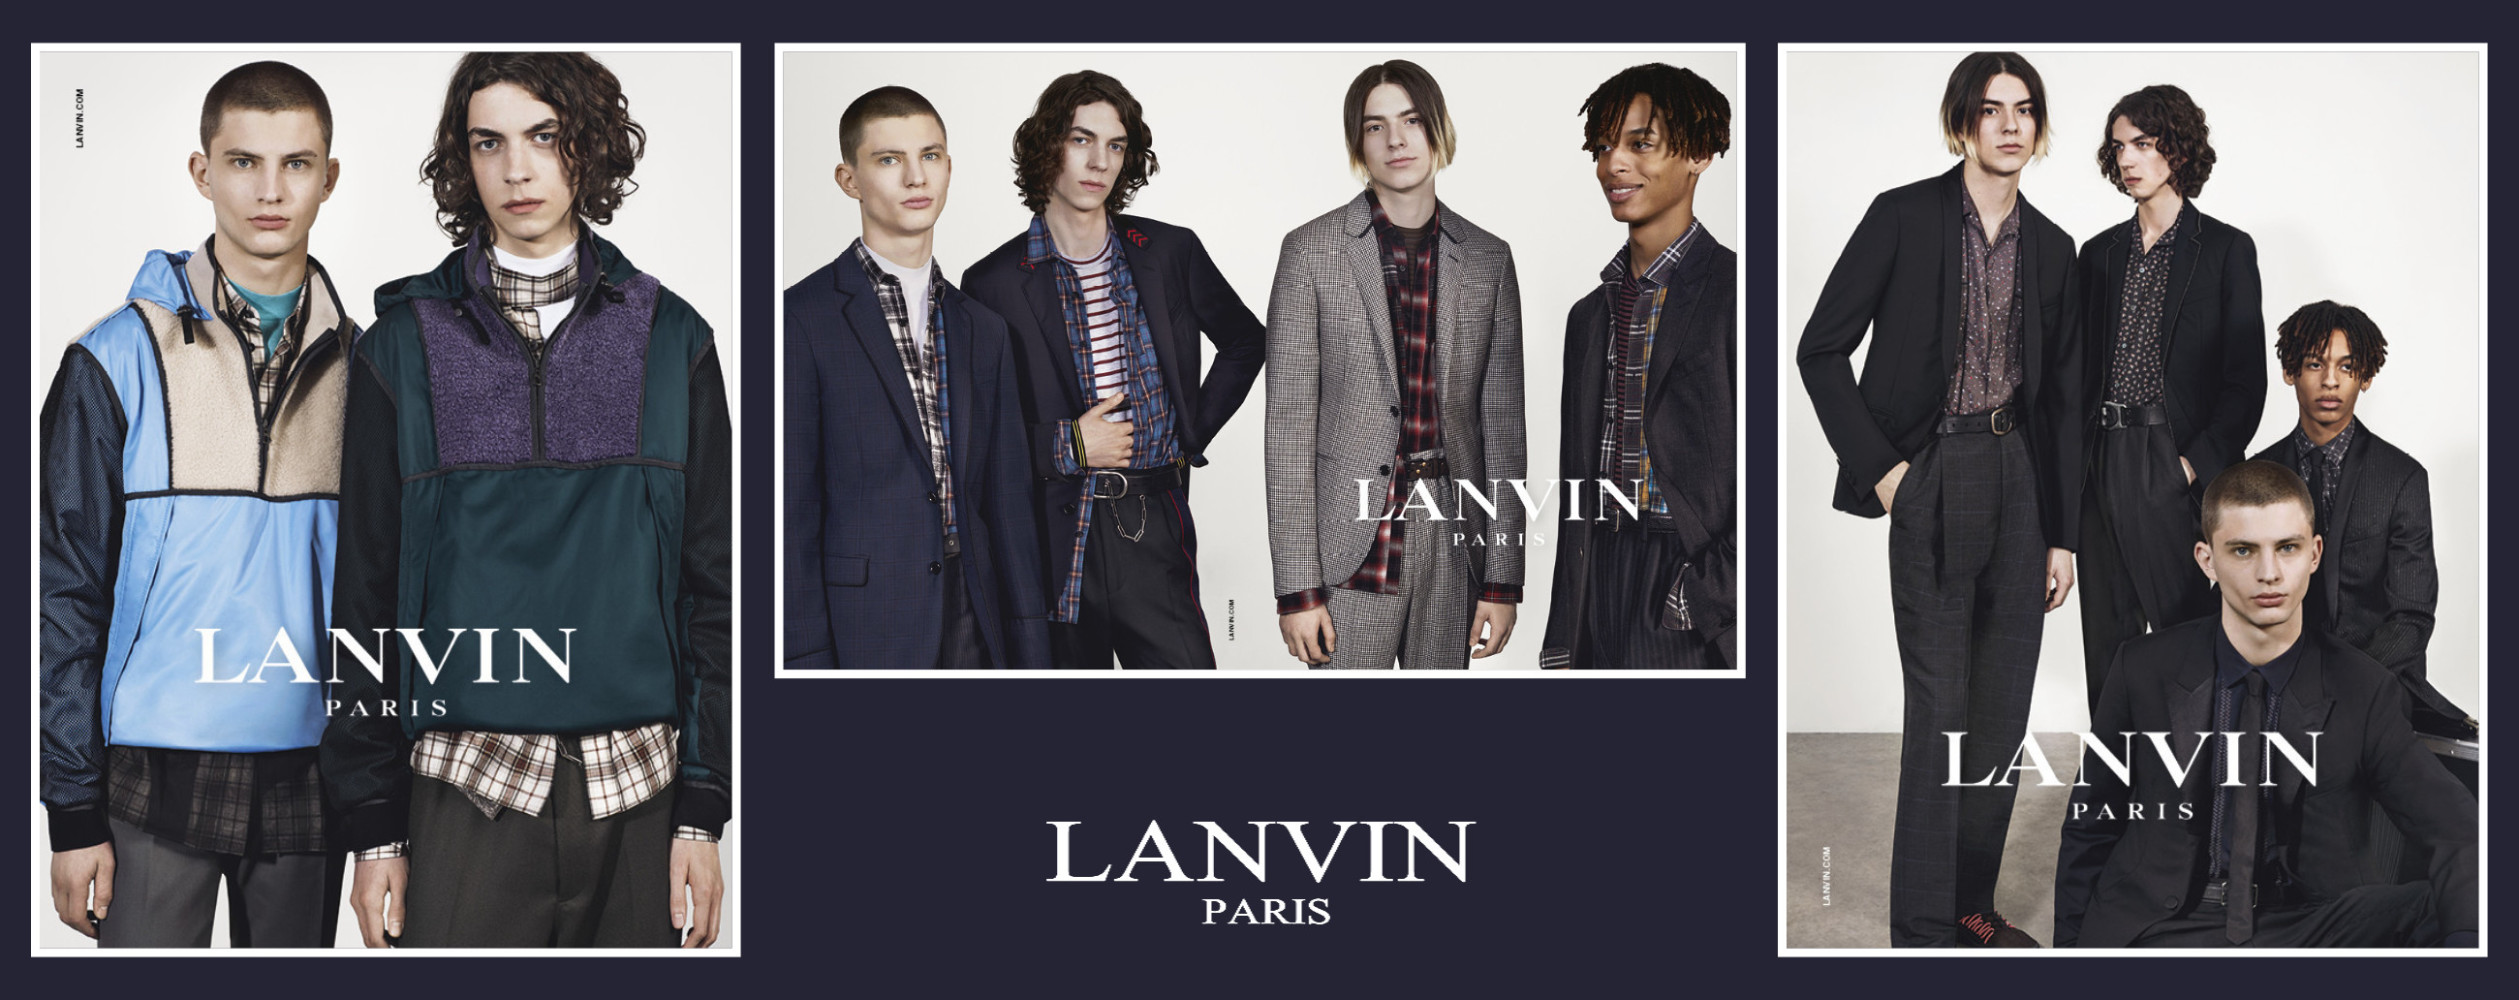 OLEG ULRICH FOR LANVIN FW17 CAMPAIGN